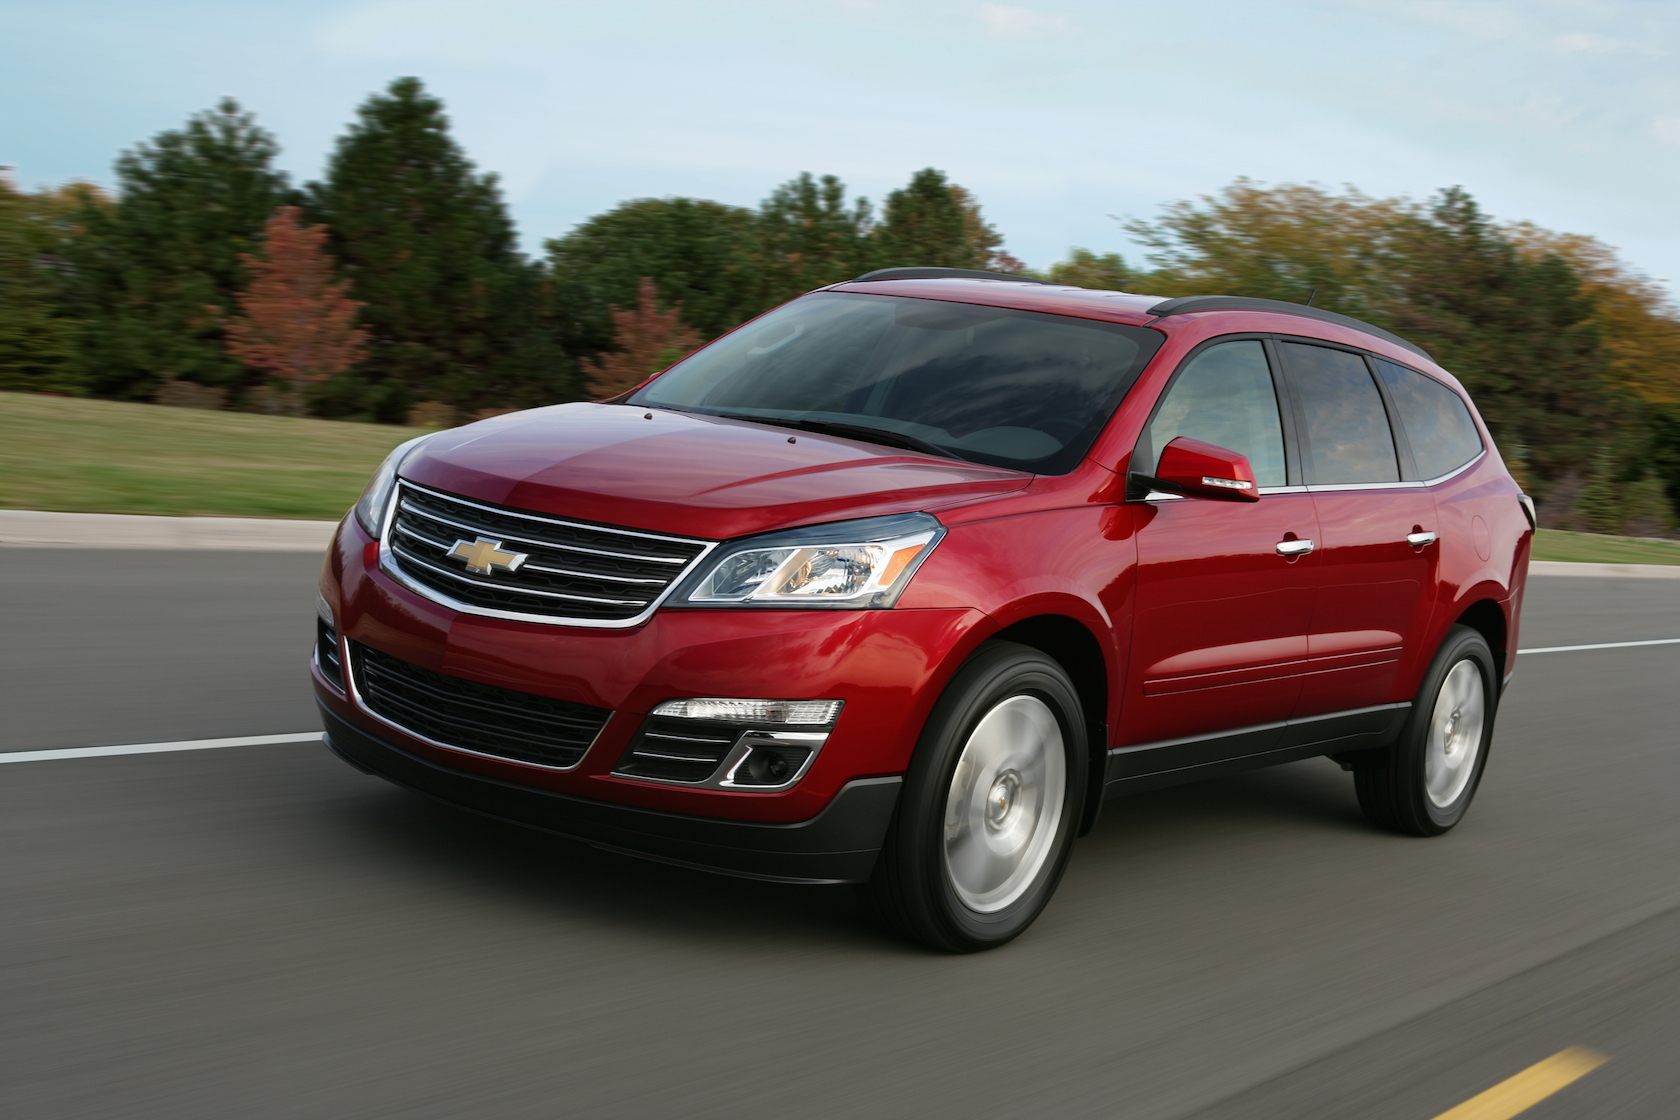 2015 Chevrolet Traverse Chevy Review Ratings Specs